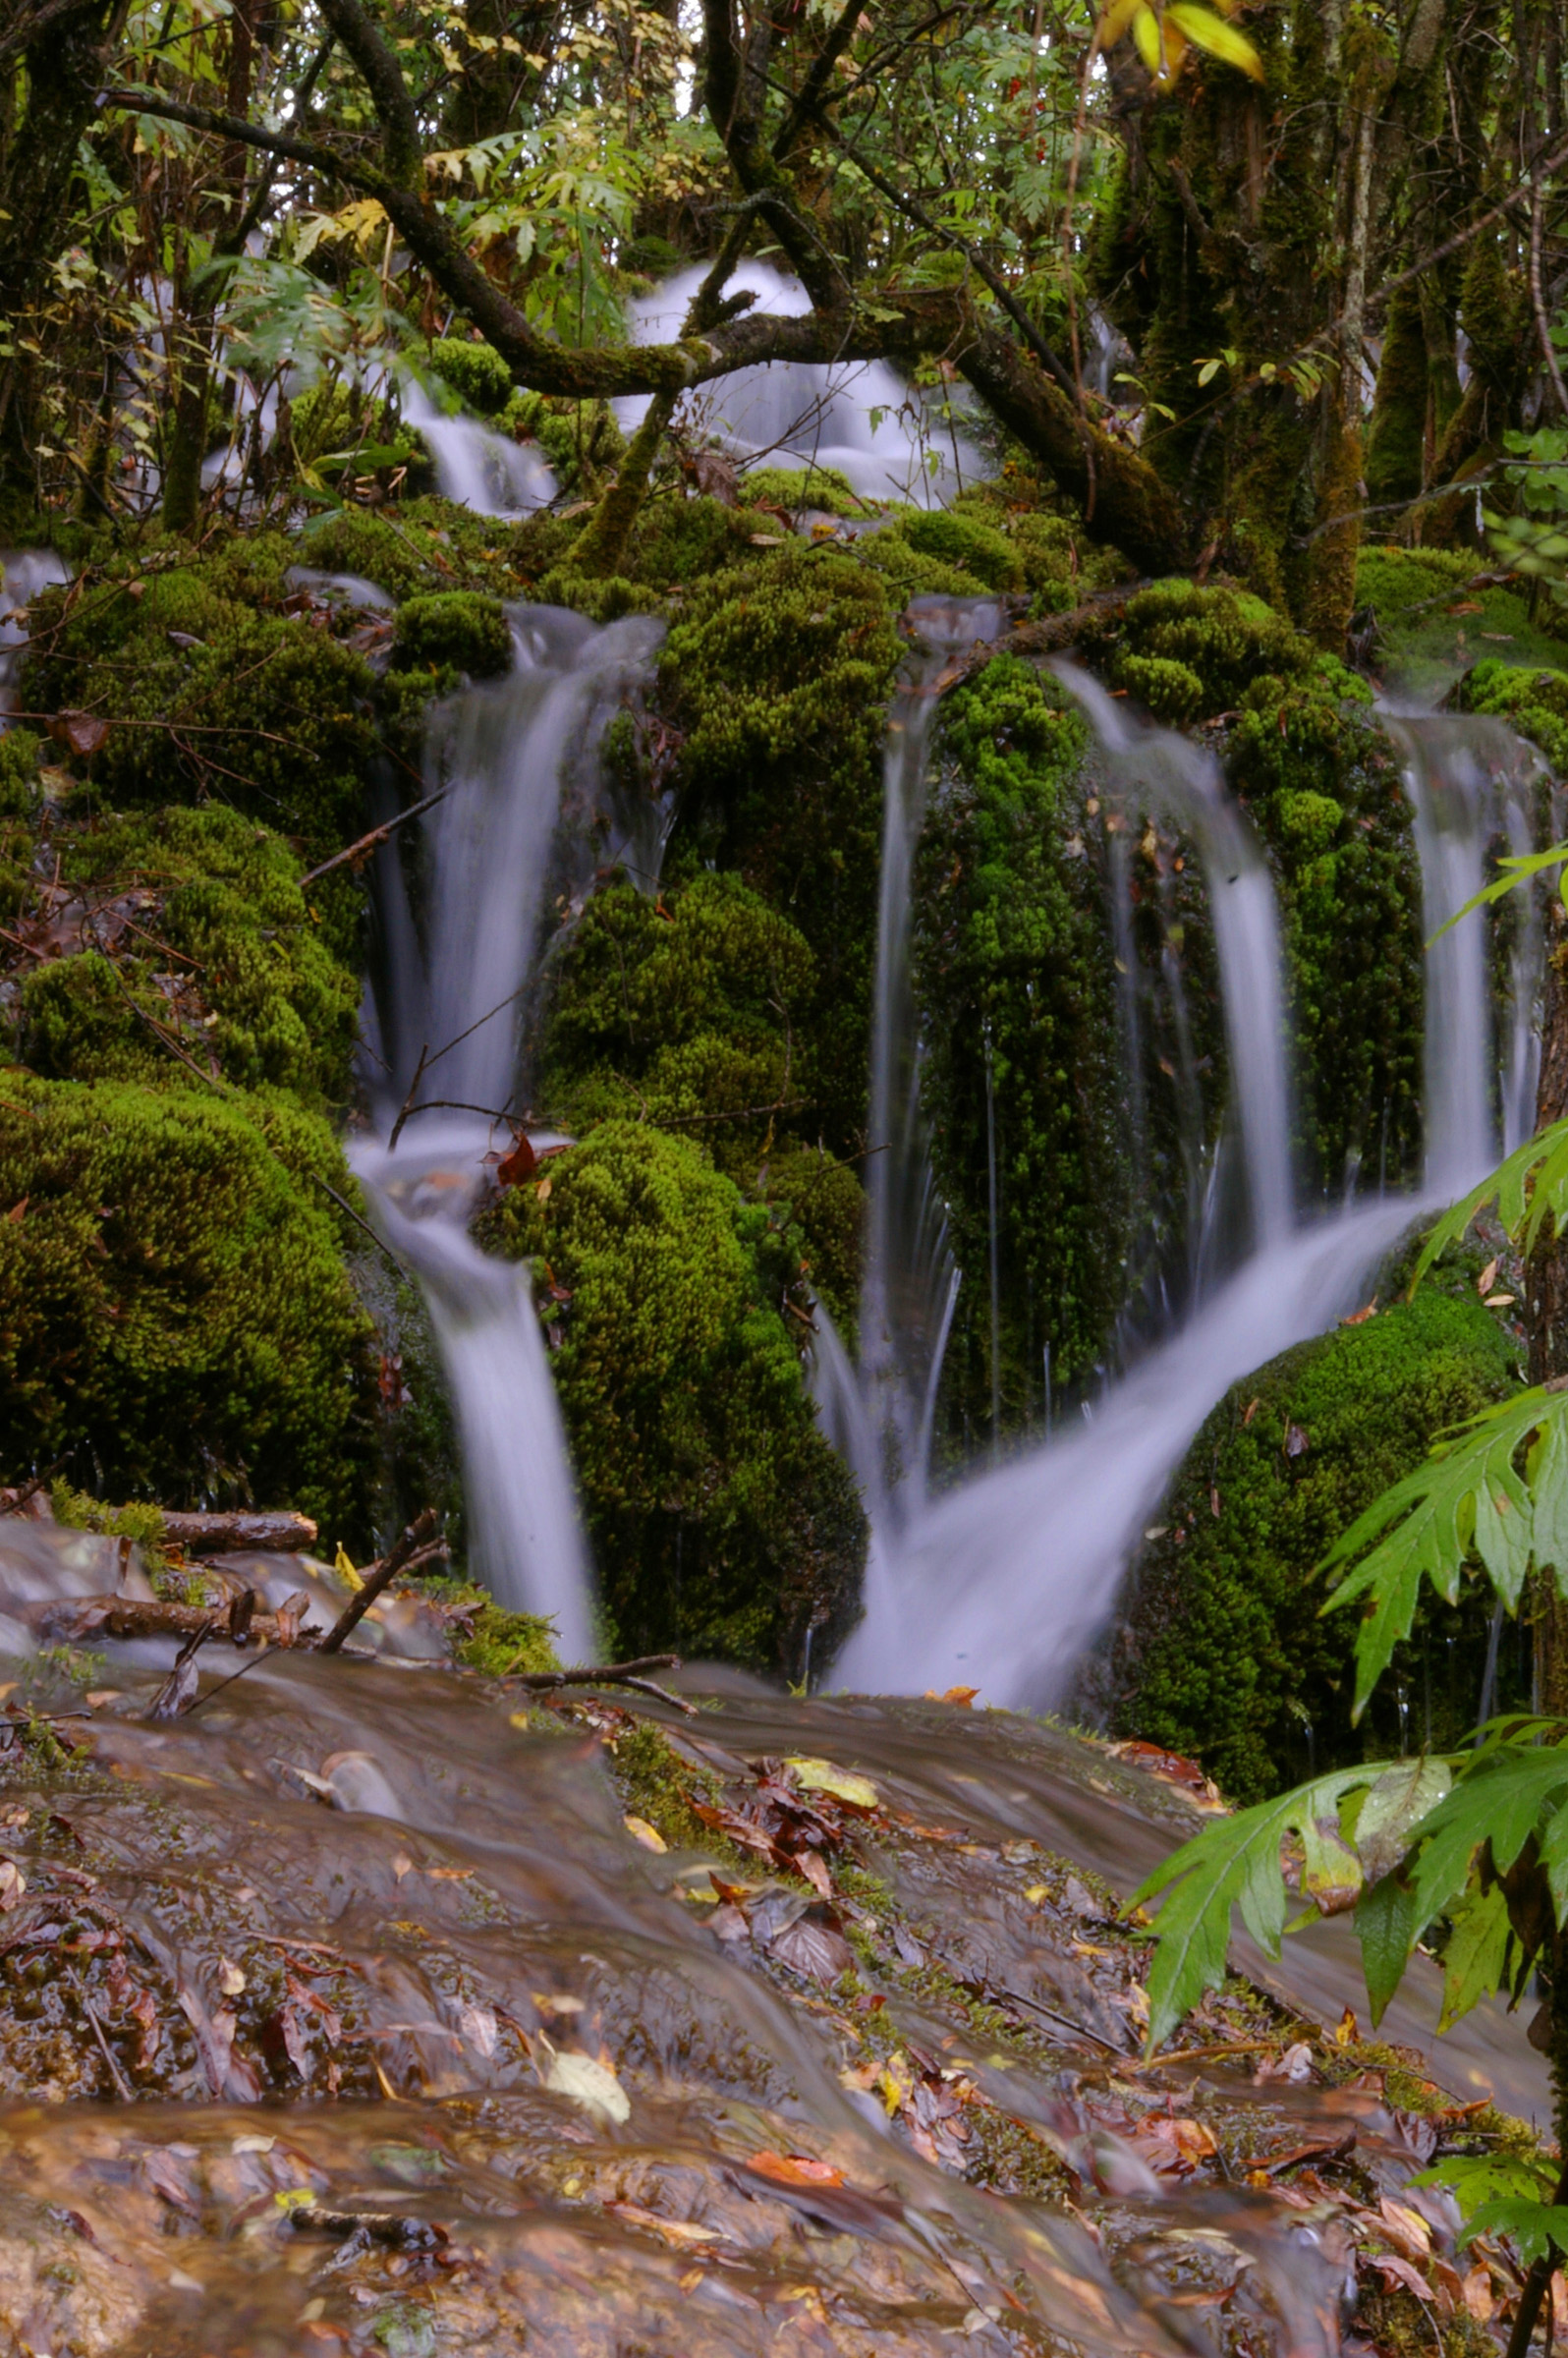 Long exposure with silky white water of several waterfalls flowing over mossy rocks in a scene of natural beauty